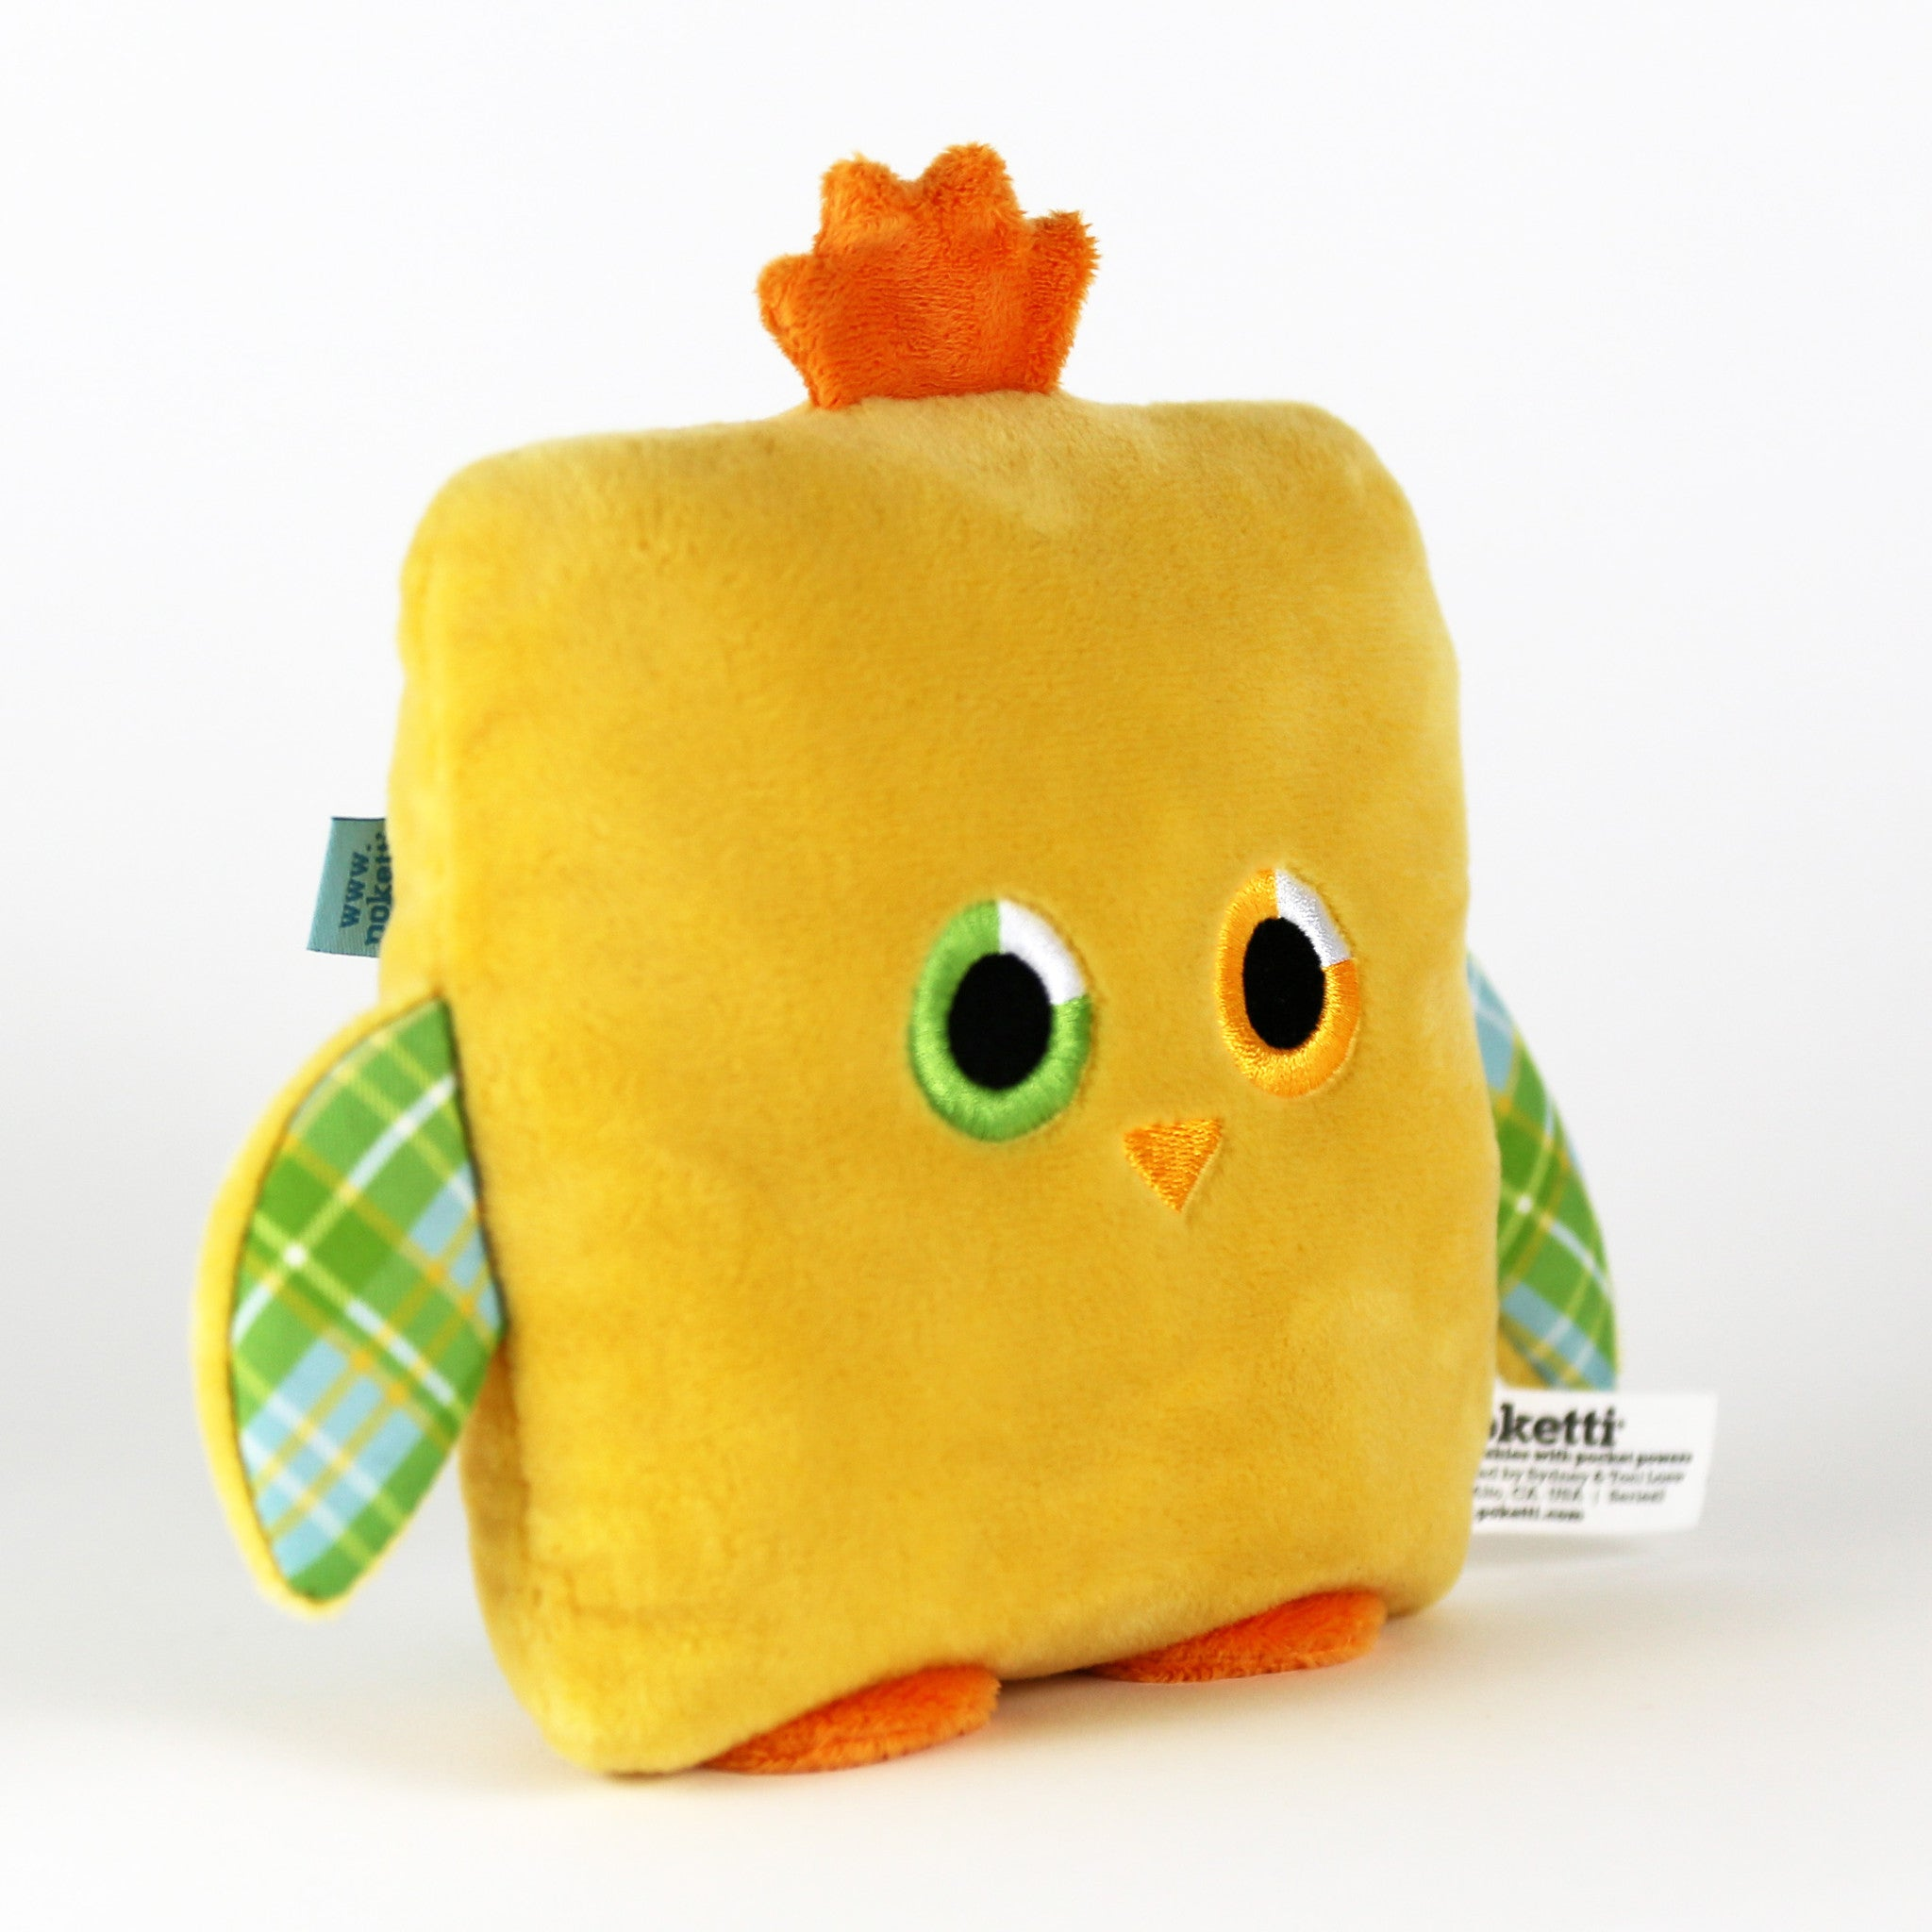 Plush toy chick stuffed animal bird with a useful back pocket